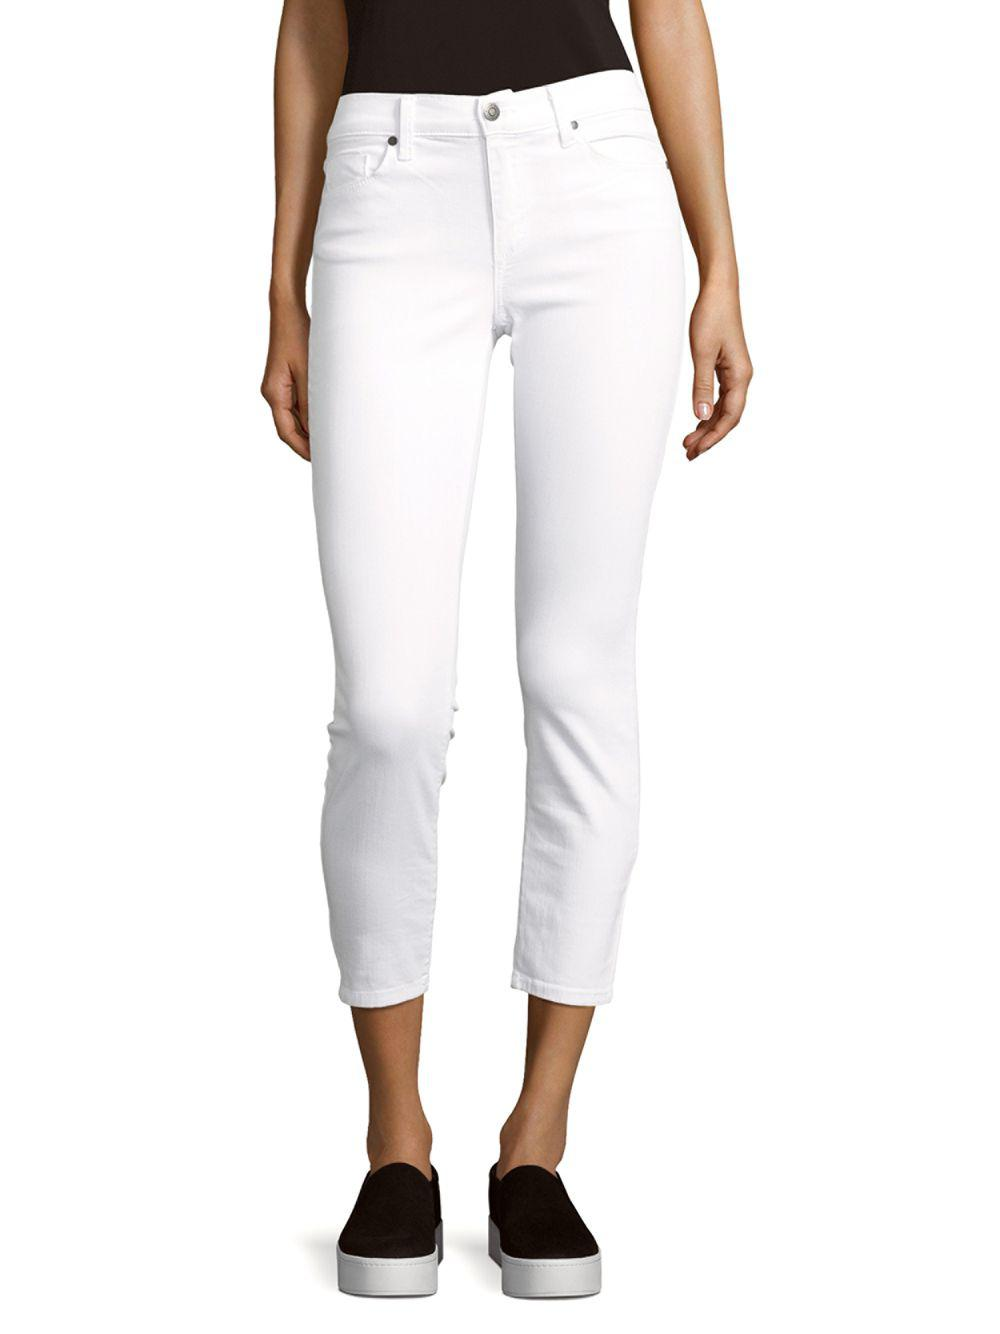 Clearance For Sale Freja Rolled Crop Pants Pistola Denim For Nice CnEnn20